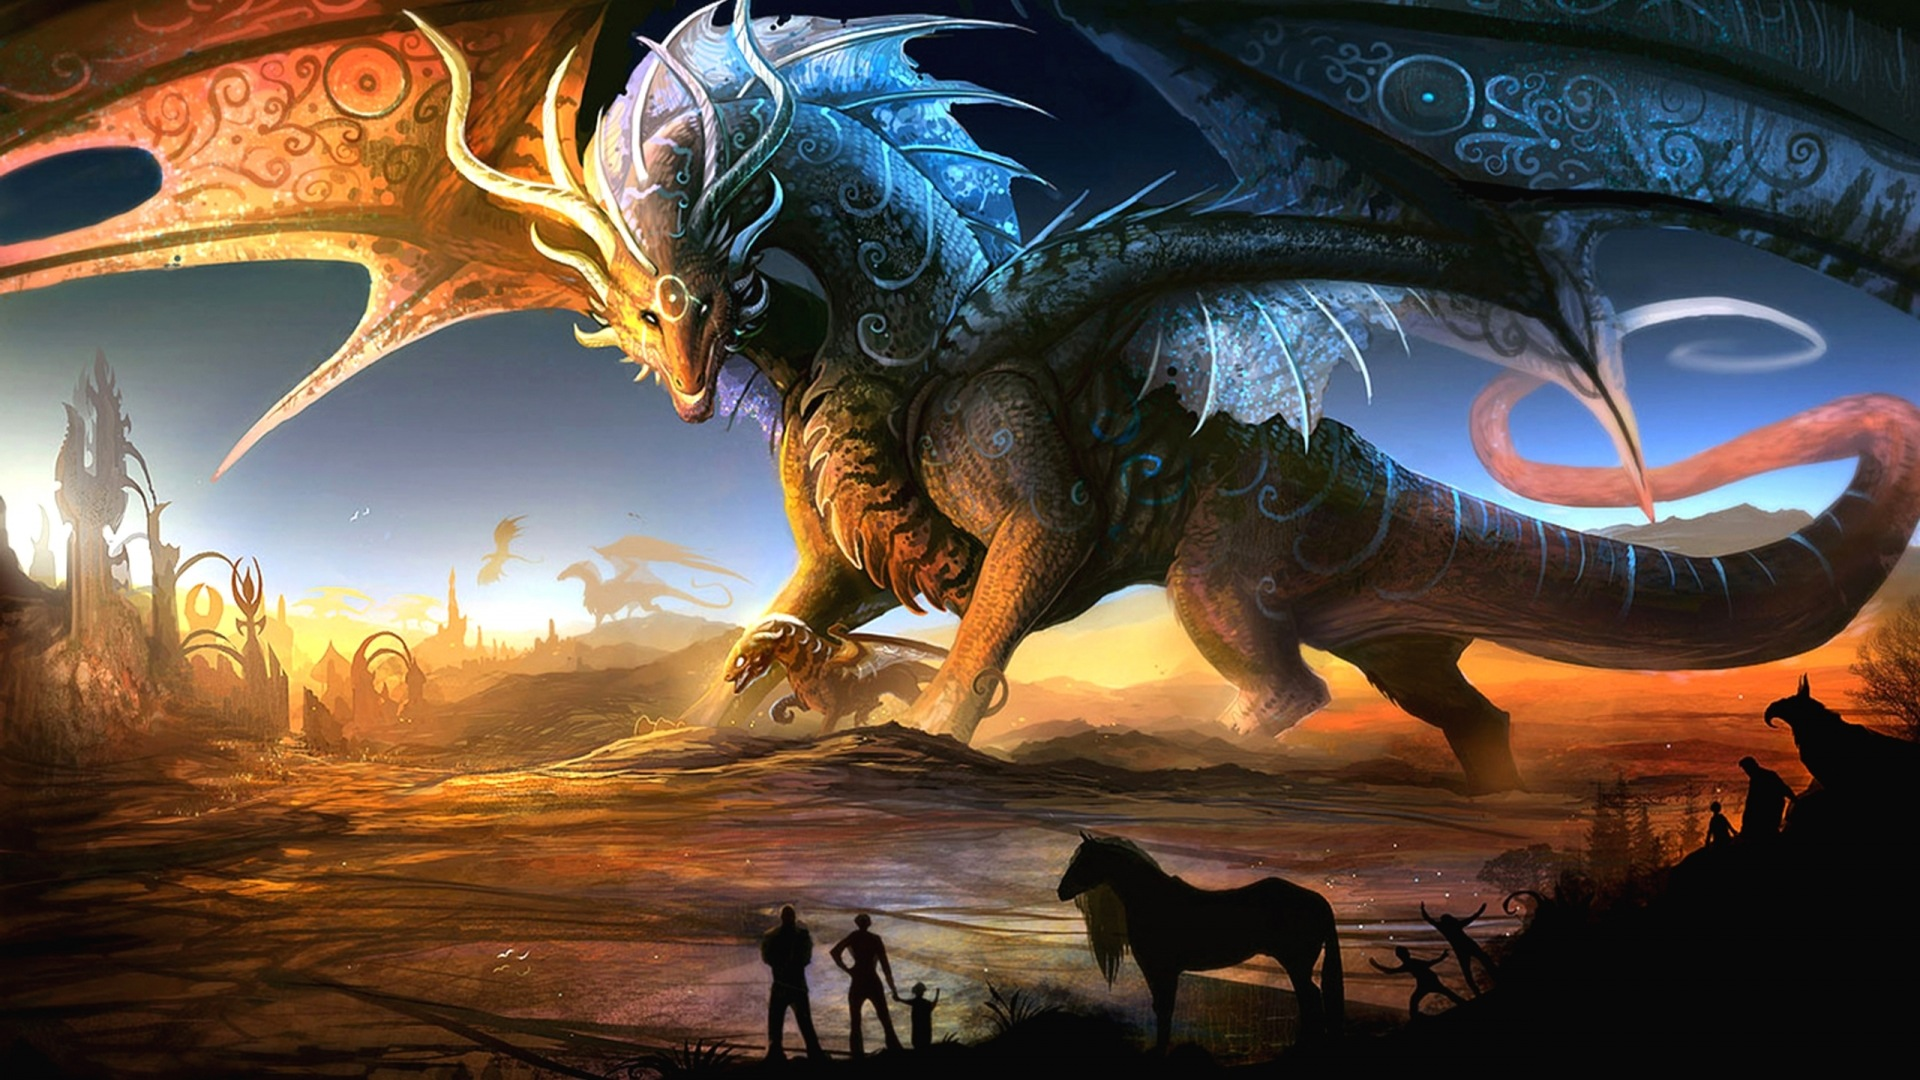 Drachen | WdM Wikia | FANDOM powered by Wikia